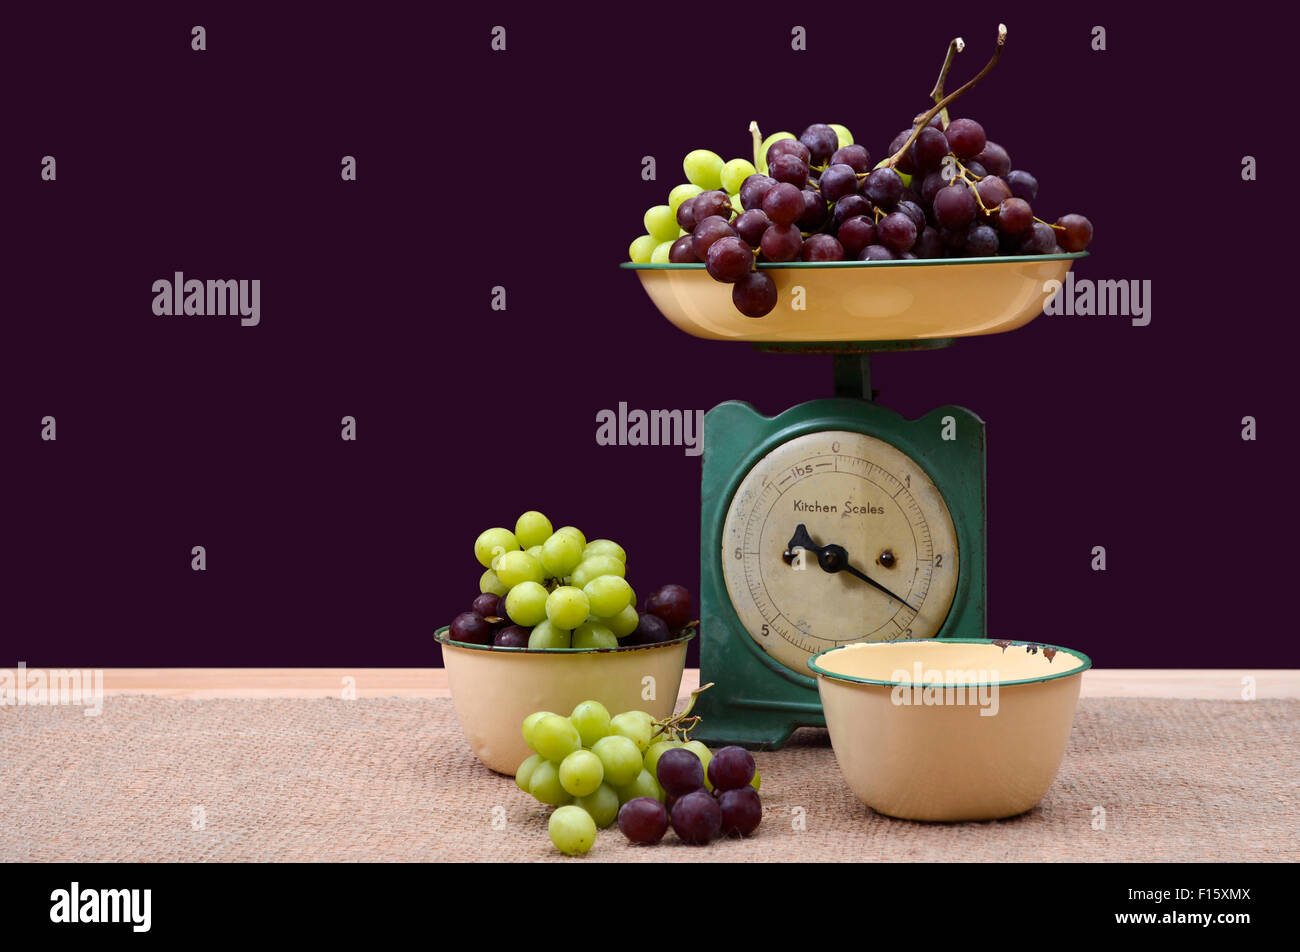 Weighing grapes on vintage scale with old enamel bowls on burlap covered pine table. - Stock Image